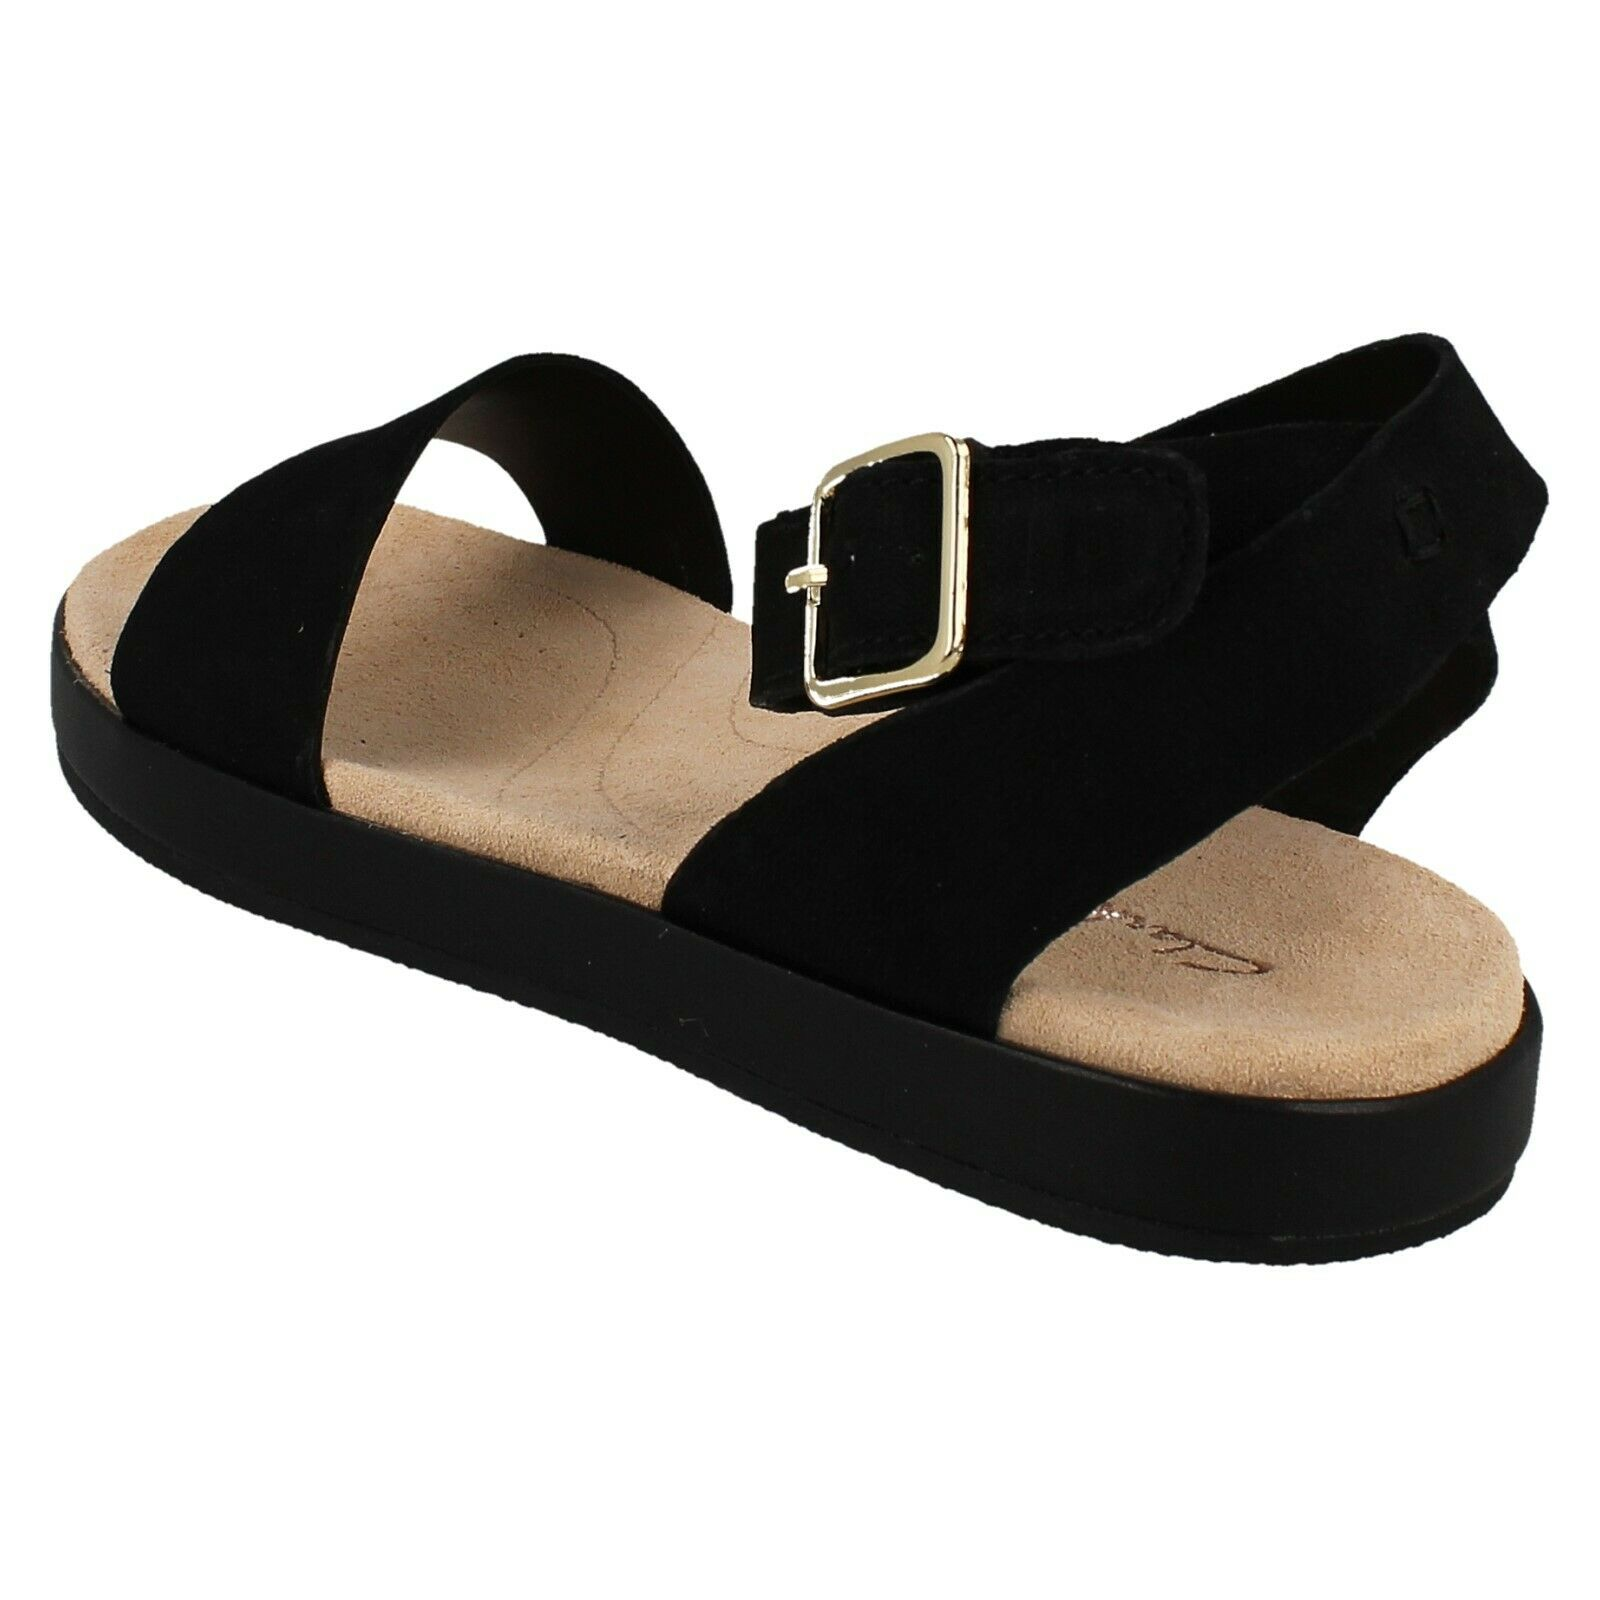 LADIES CLARKS LEATHER BUCKLE BUCKLE BUCKLE ANKLE STRAP CASUAL SANDALS OPEN TOE BOTANIC IVY  | Neue Produkte im Jahr 2019